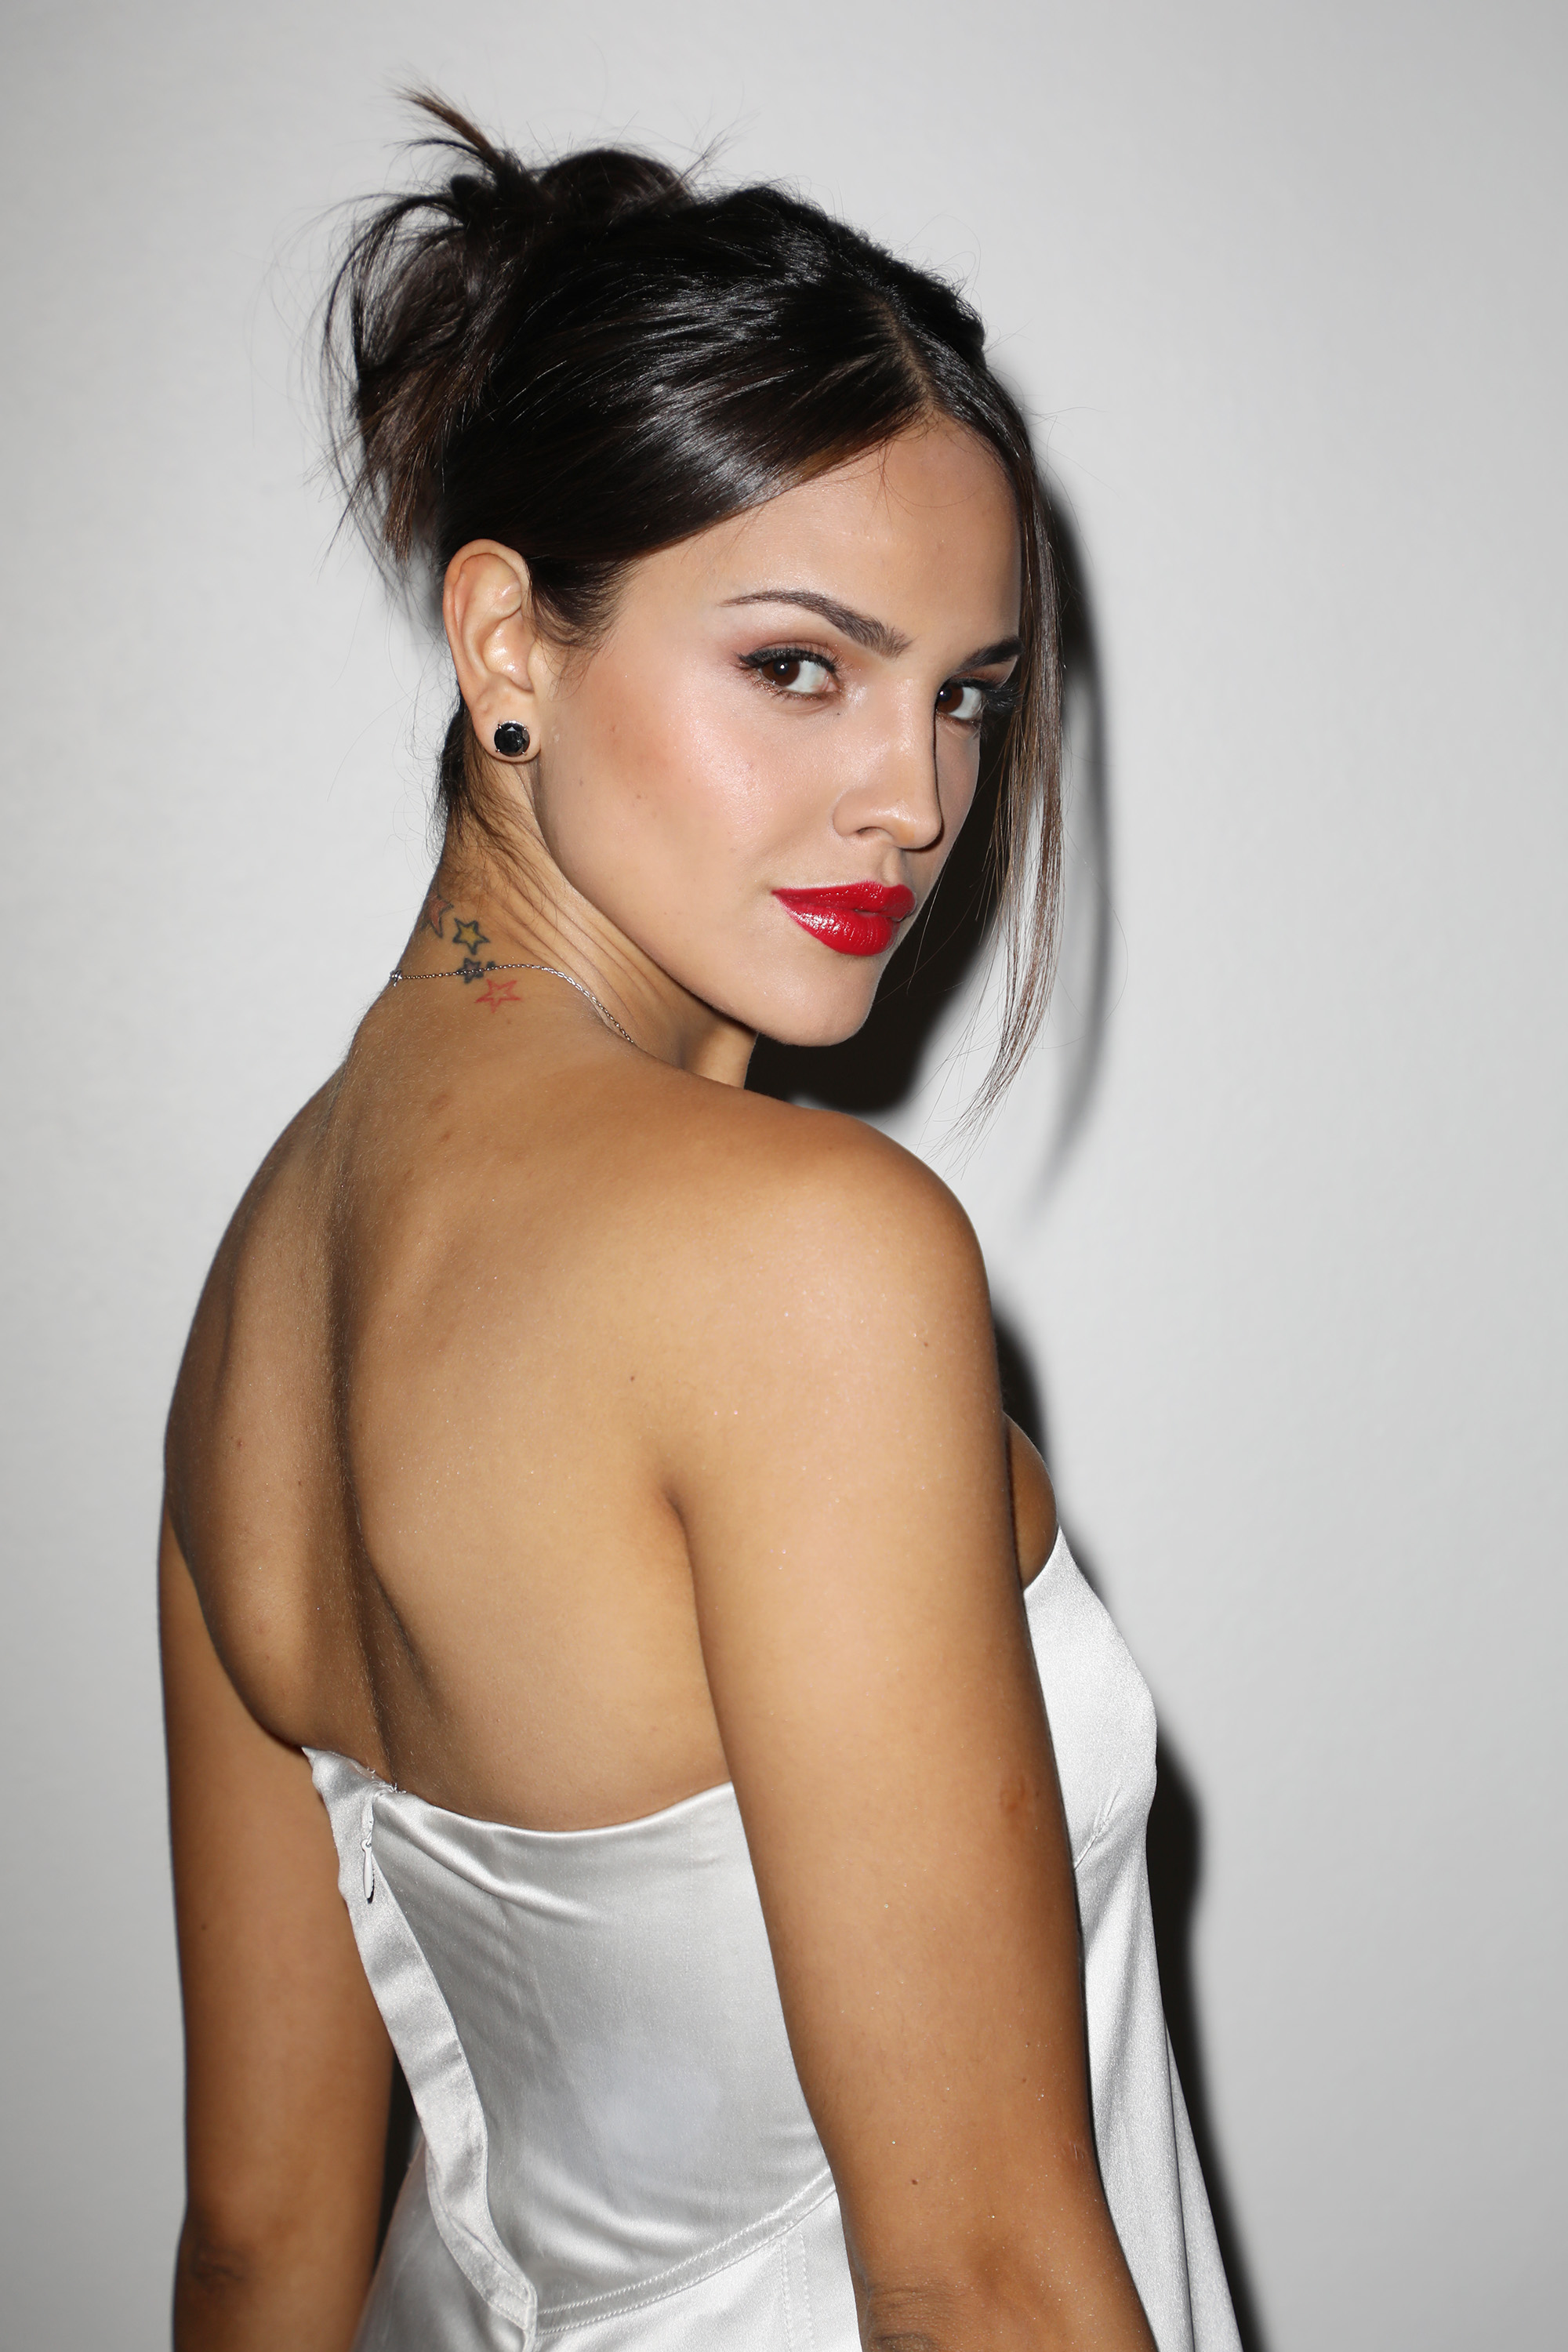 Actress, Eiza Gonzalez, Introduces a Special Screening of 'Baby Driver' at Regal South Beach on June 15, 2017 in Miami, Florida